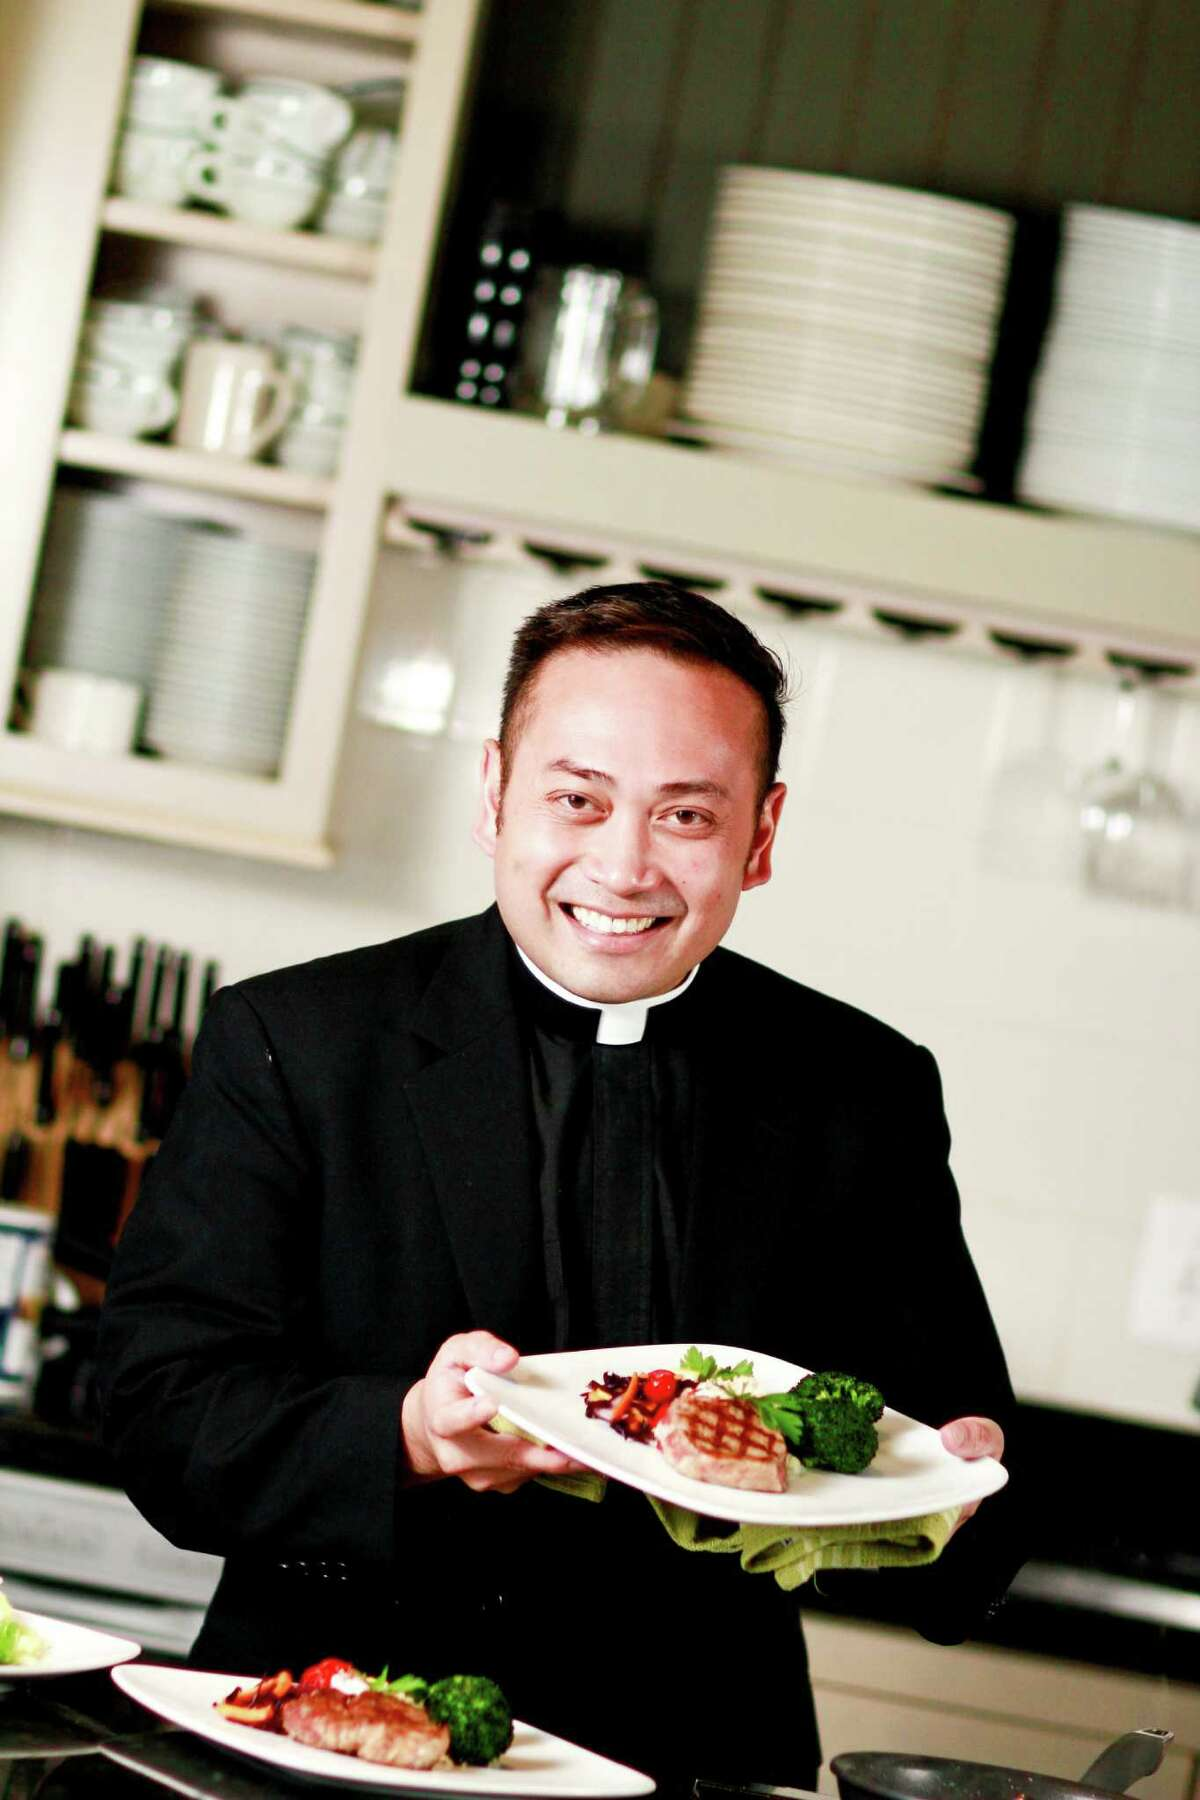 """St. Laurence Catholic Church, 3100 Sweetwater Blvd., will welcome the """"Cooking Priest"""" Father Leo Patalinghug as keynote speaker for Heart of Worship, from 11:30 a.m-9 p.m. March 1."""